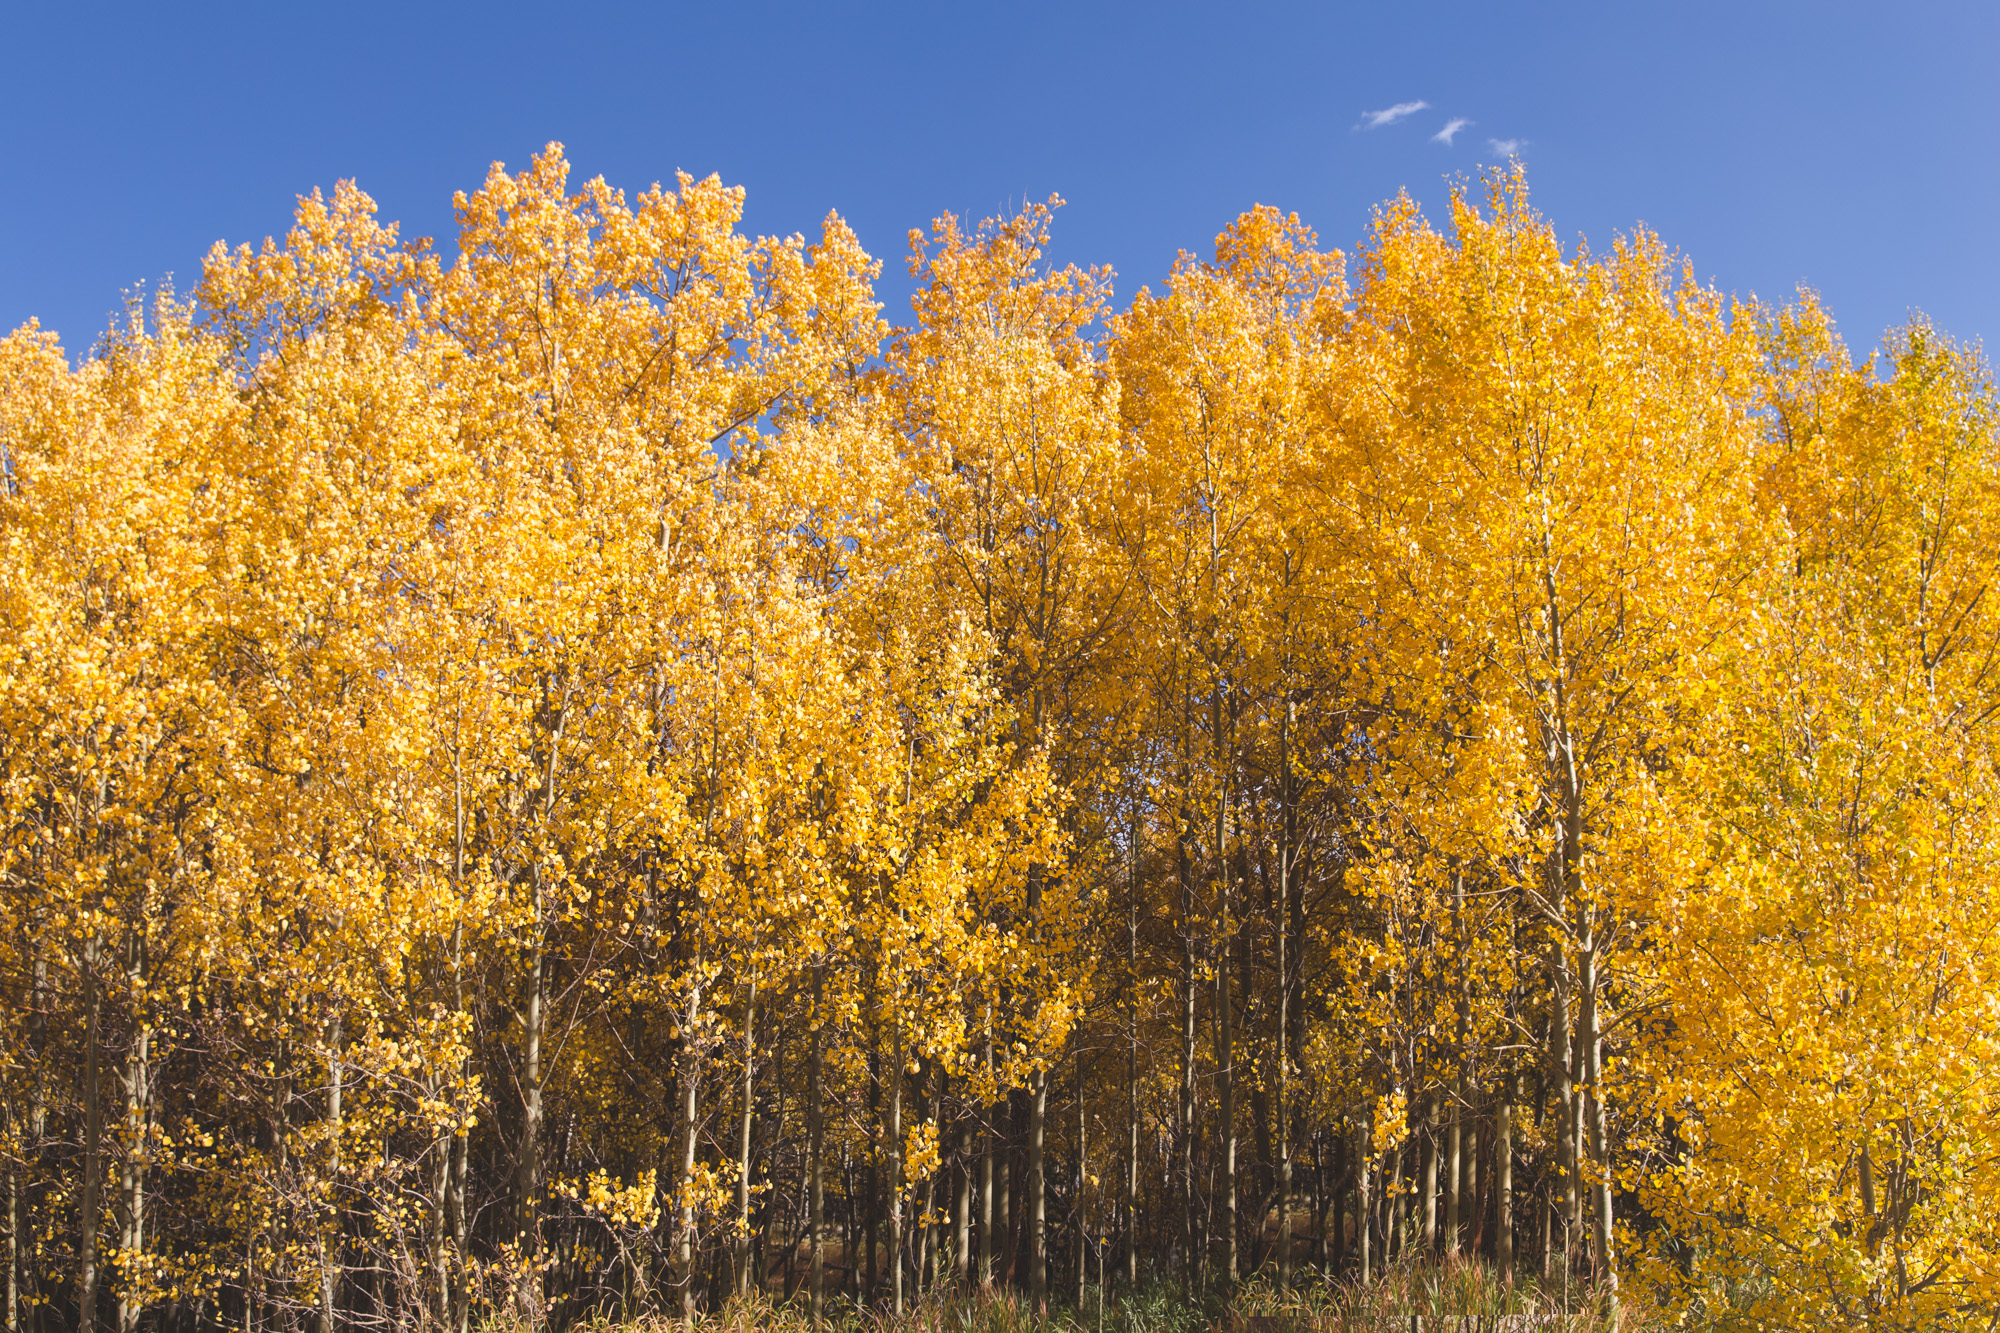 The Burning Bear Trail on the Guanella Pass in Colorado is lined with yellow aspen trees in the fall!